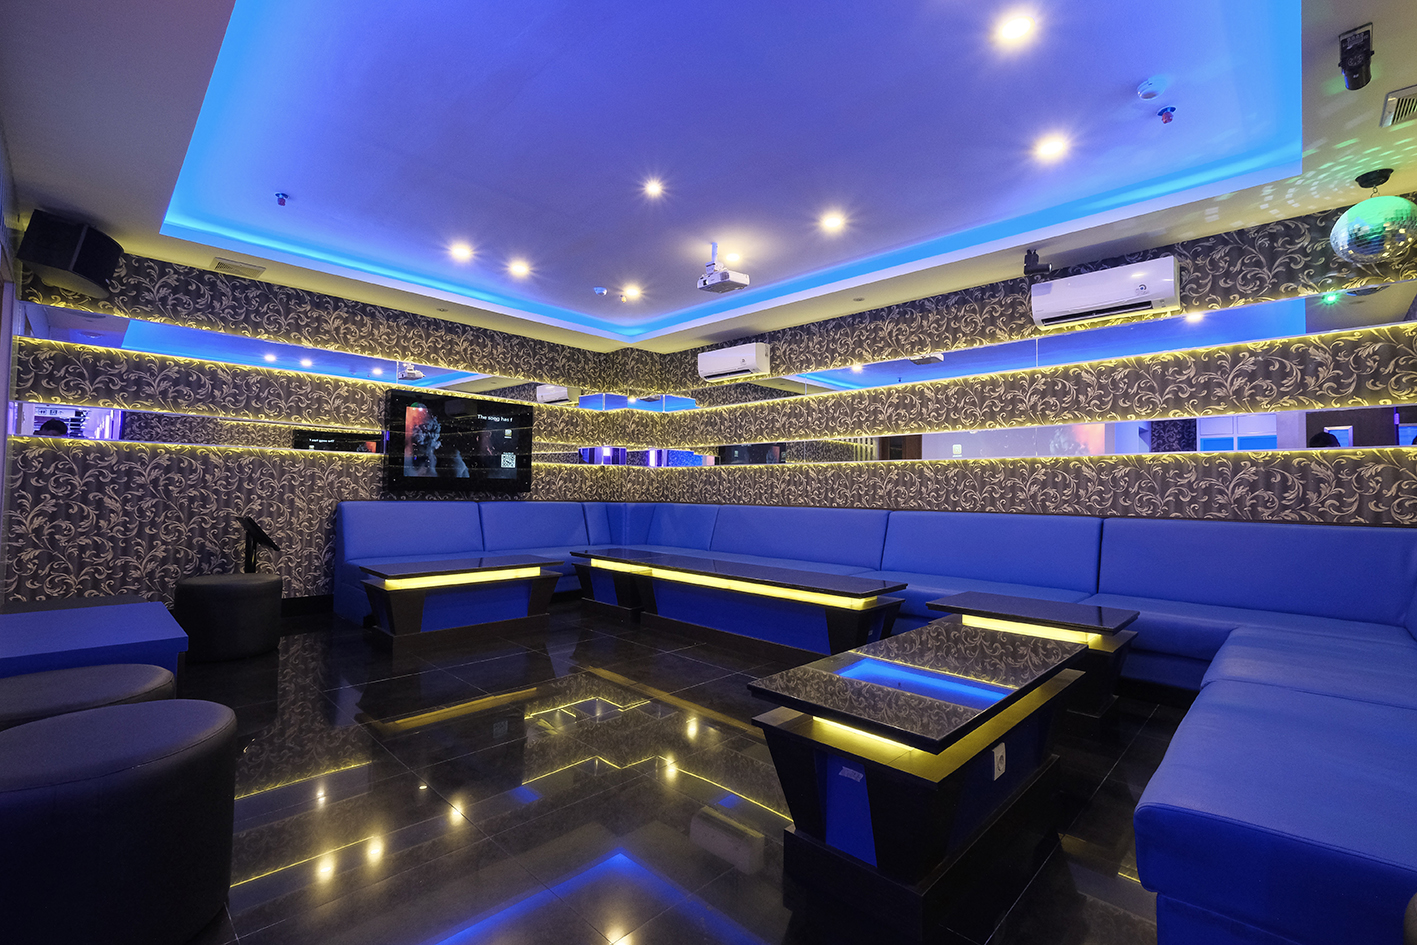 Bar Room 22 - 15-20 Orang***WEEKDAYS***(Senin - Jumat 11.00 - 17.00 = 115K/jam)(Minggu - Kamis 17.00 - 23.00 = 230K/jam)(Minggu - Kamis 23.00 - CLOSE = 150K/jam)***WEEKEND***(Sabtu - Minggu 11.00 - 17.00 = 130K/jam)(Jumat - Sabtu 17.01 - CLOSE = 260K/jam)